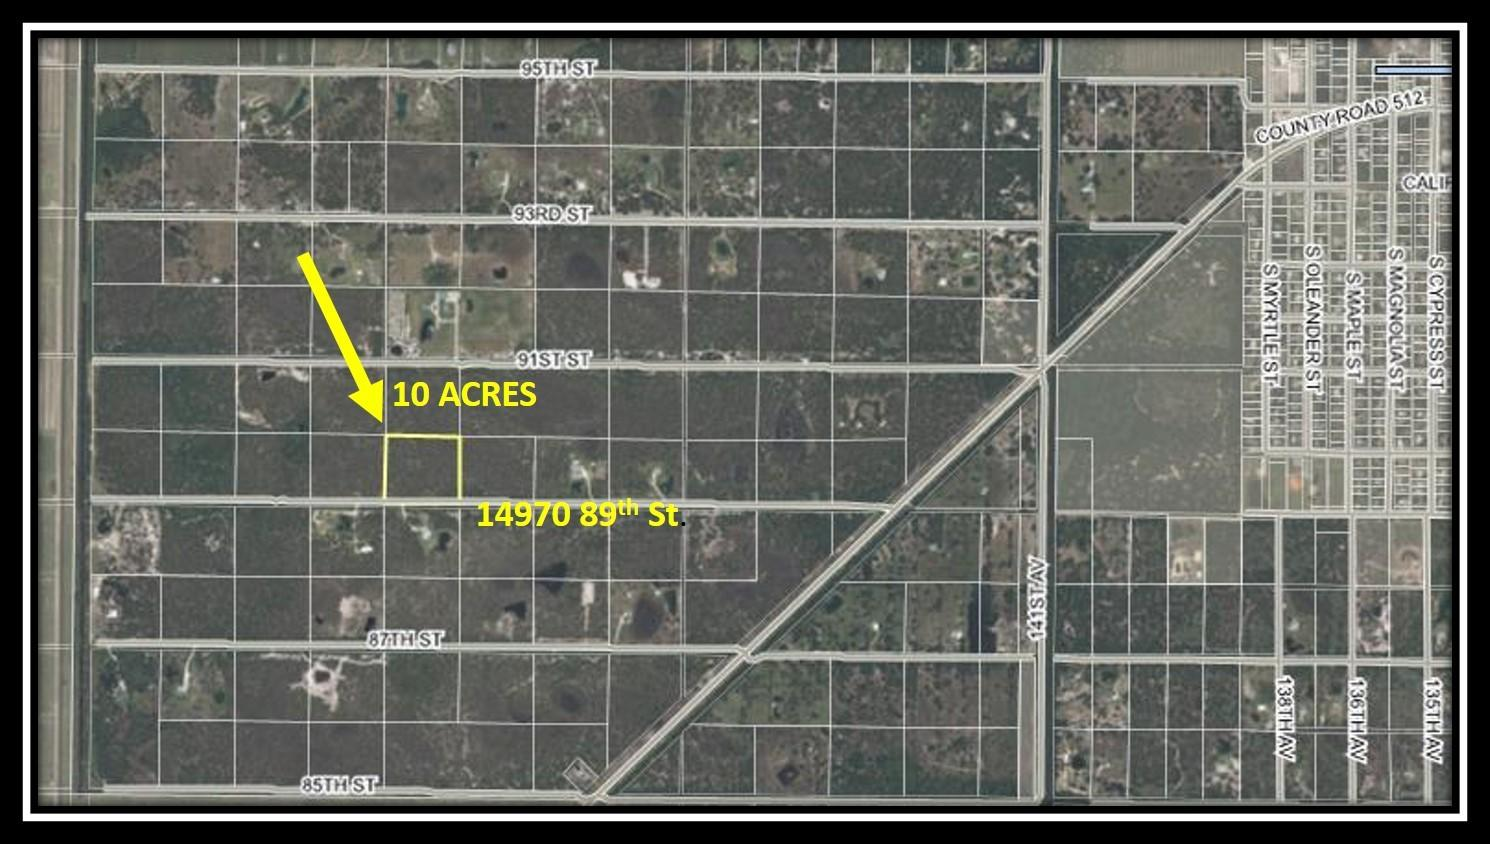 Land for sale in 14970 89th Street, Fellsmere, Florida ,32948